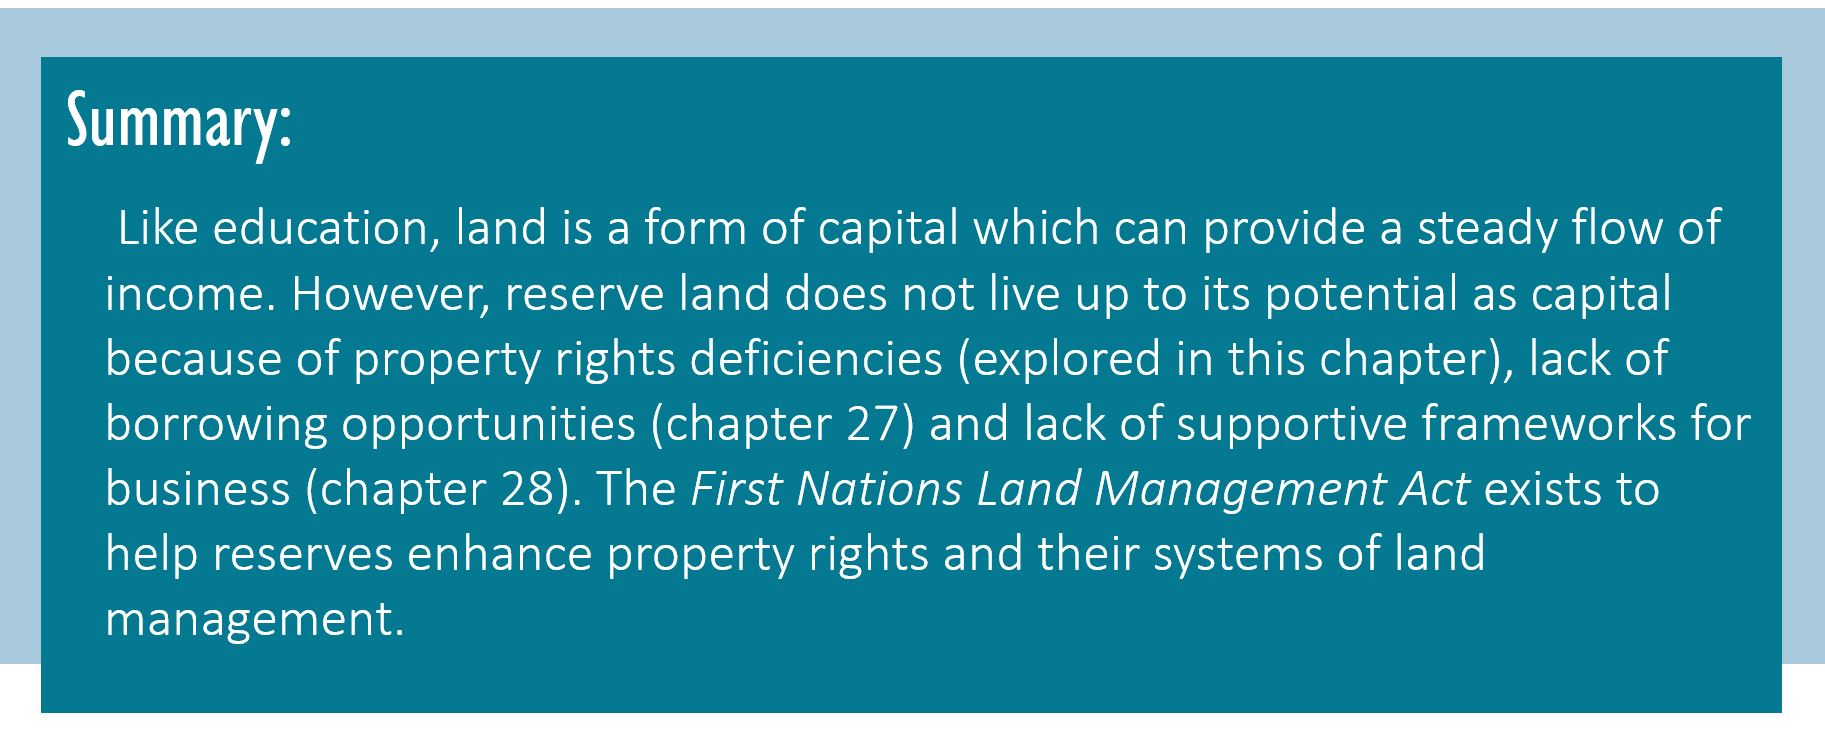 Summary: Like education, land is a form of capital which can provide a steady flow of income. However, reserve land does not live up to its potential as capital because of property rights deficiencies (explored in this chapter), lack of borrowing opportunities (chapter 27) and lack of supportive frameworks for business (chapter 28). The First Nations Land Management Act exists to help reserves enhance property rights and their systems of land management.